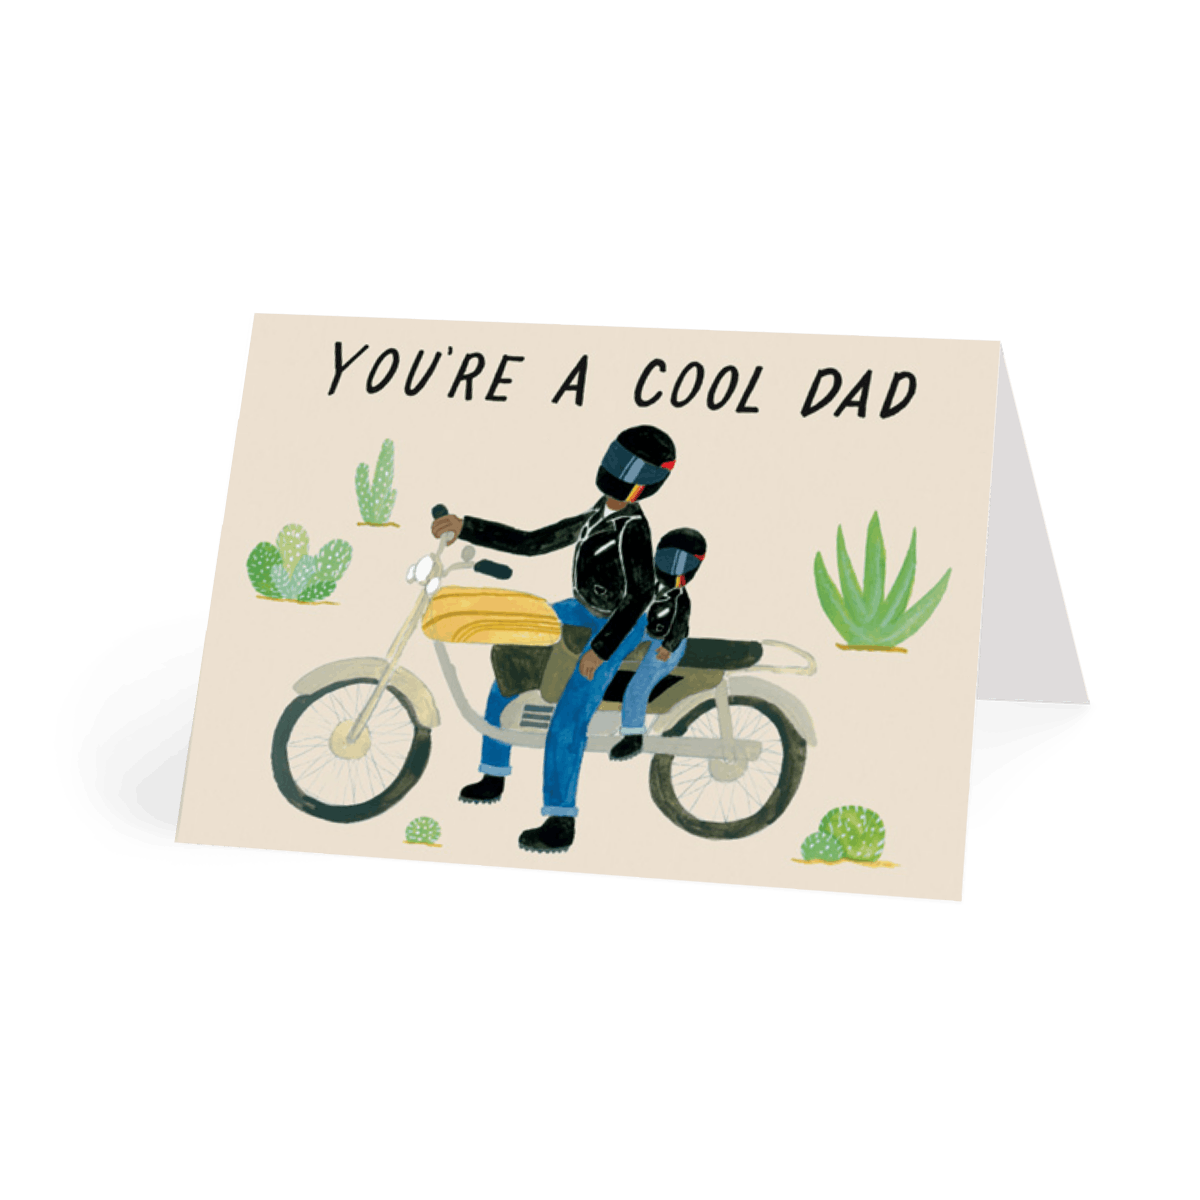 Https%3a%2f%2fwww.papier.com%2fproduct image%2f16955%2f14%2fmotorcycle dad 4460 front 1485280325.png?ixlib=rb 1.1